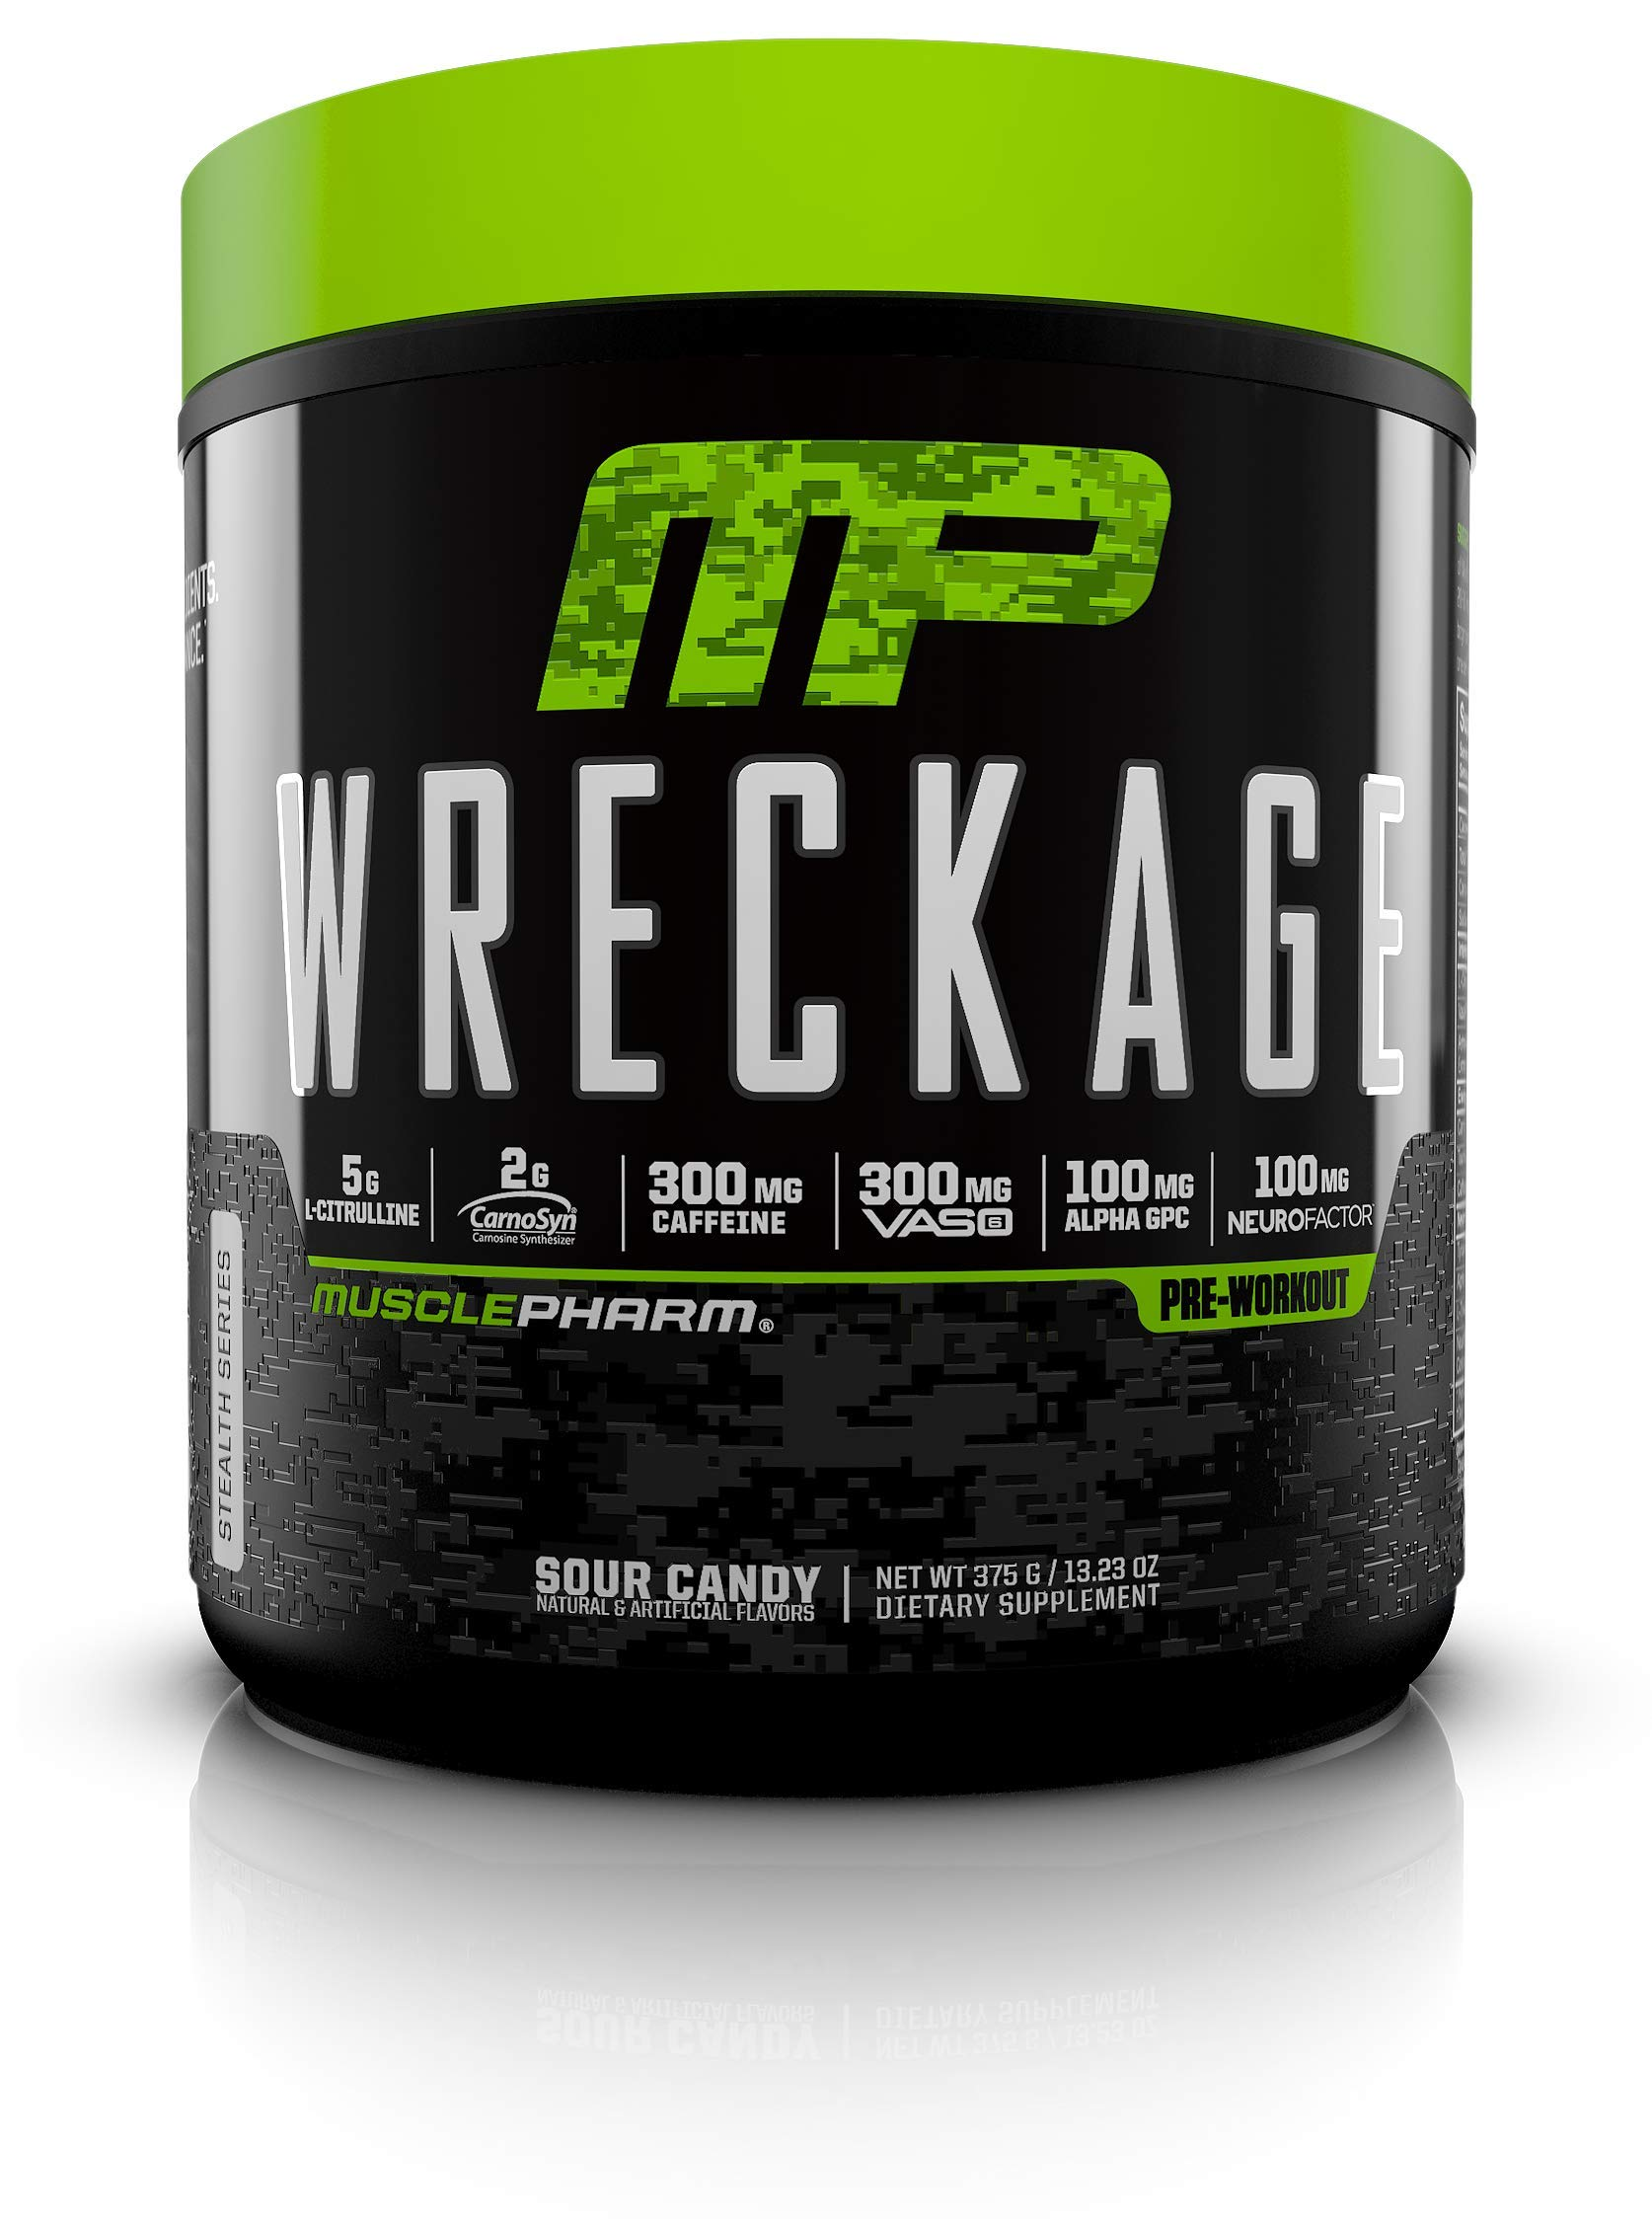 MusclePharm Wreckage Pre-Workout Powder with Superior Focus, Extreme Energy and Sustained Pump - Nitric Oxide, Beta Alanine, and Caffeine, Fruit Punch, 25 Servings by Muscle Pharm